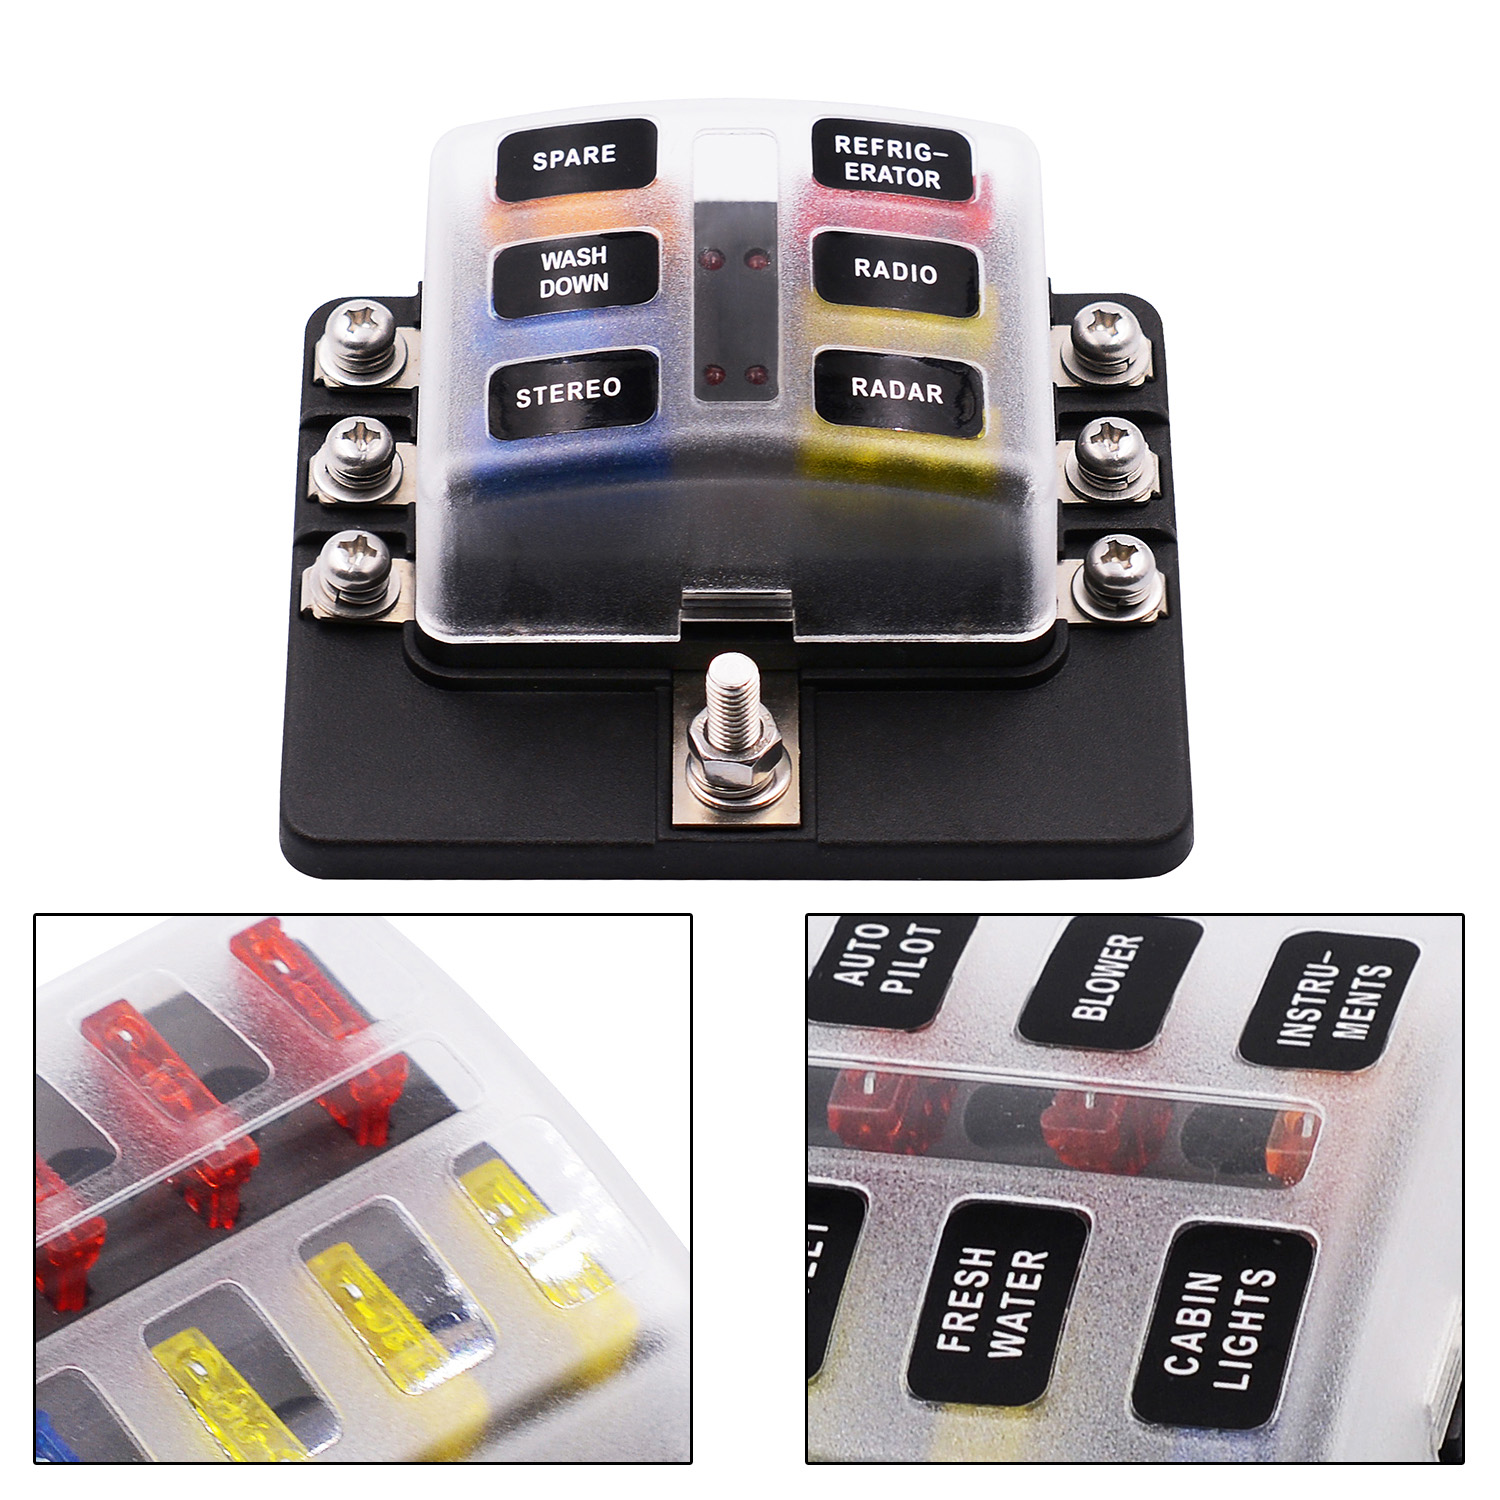 6 Way Fuse Box Blade Holder 5 10 15 20a Led Waterproof Cover Marine Covers Vetomile 5a 10a 15a Free Fuses Indicator Waterpoof For Automotive Car Boat Features